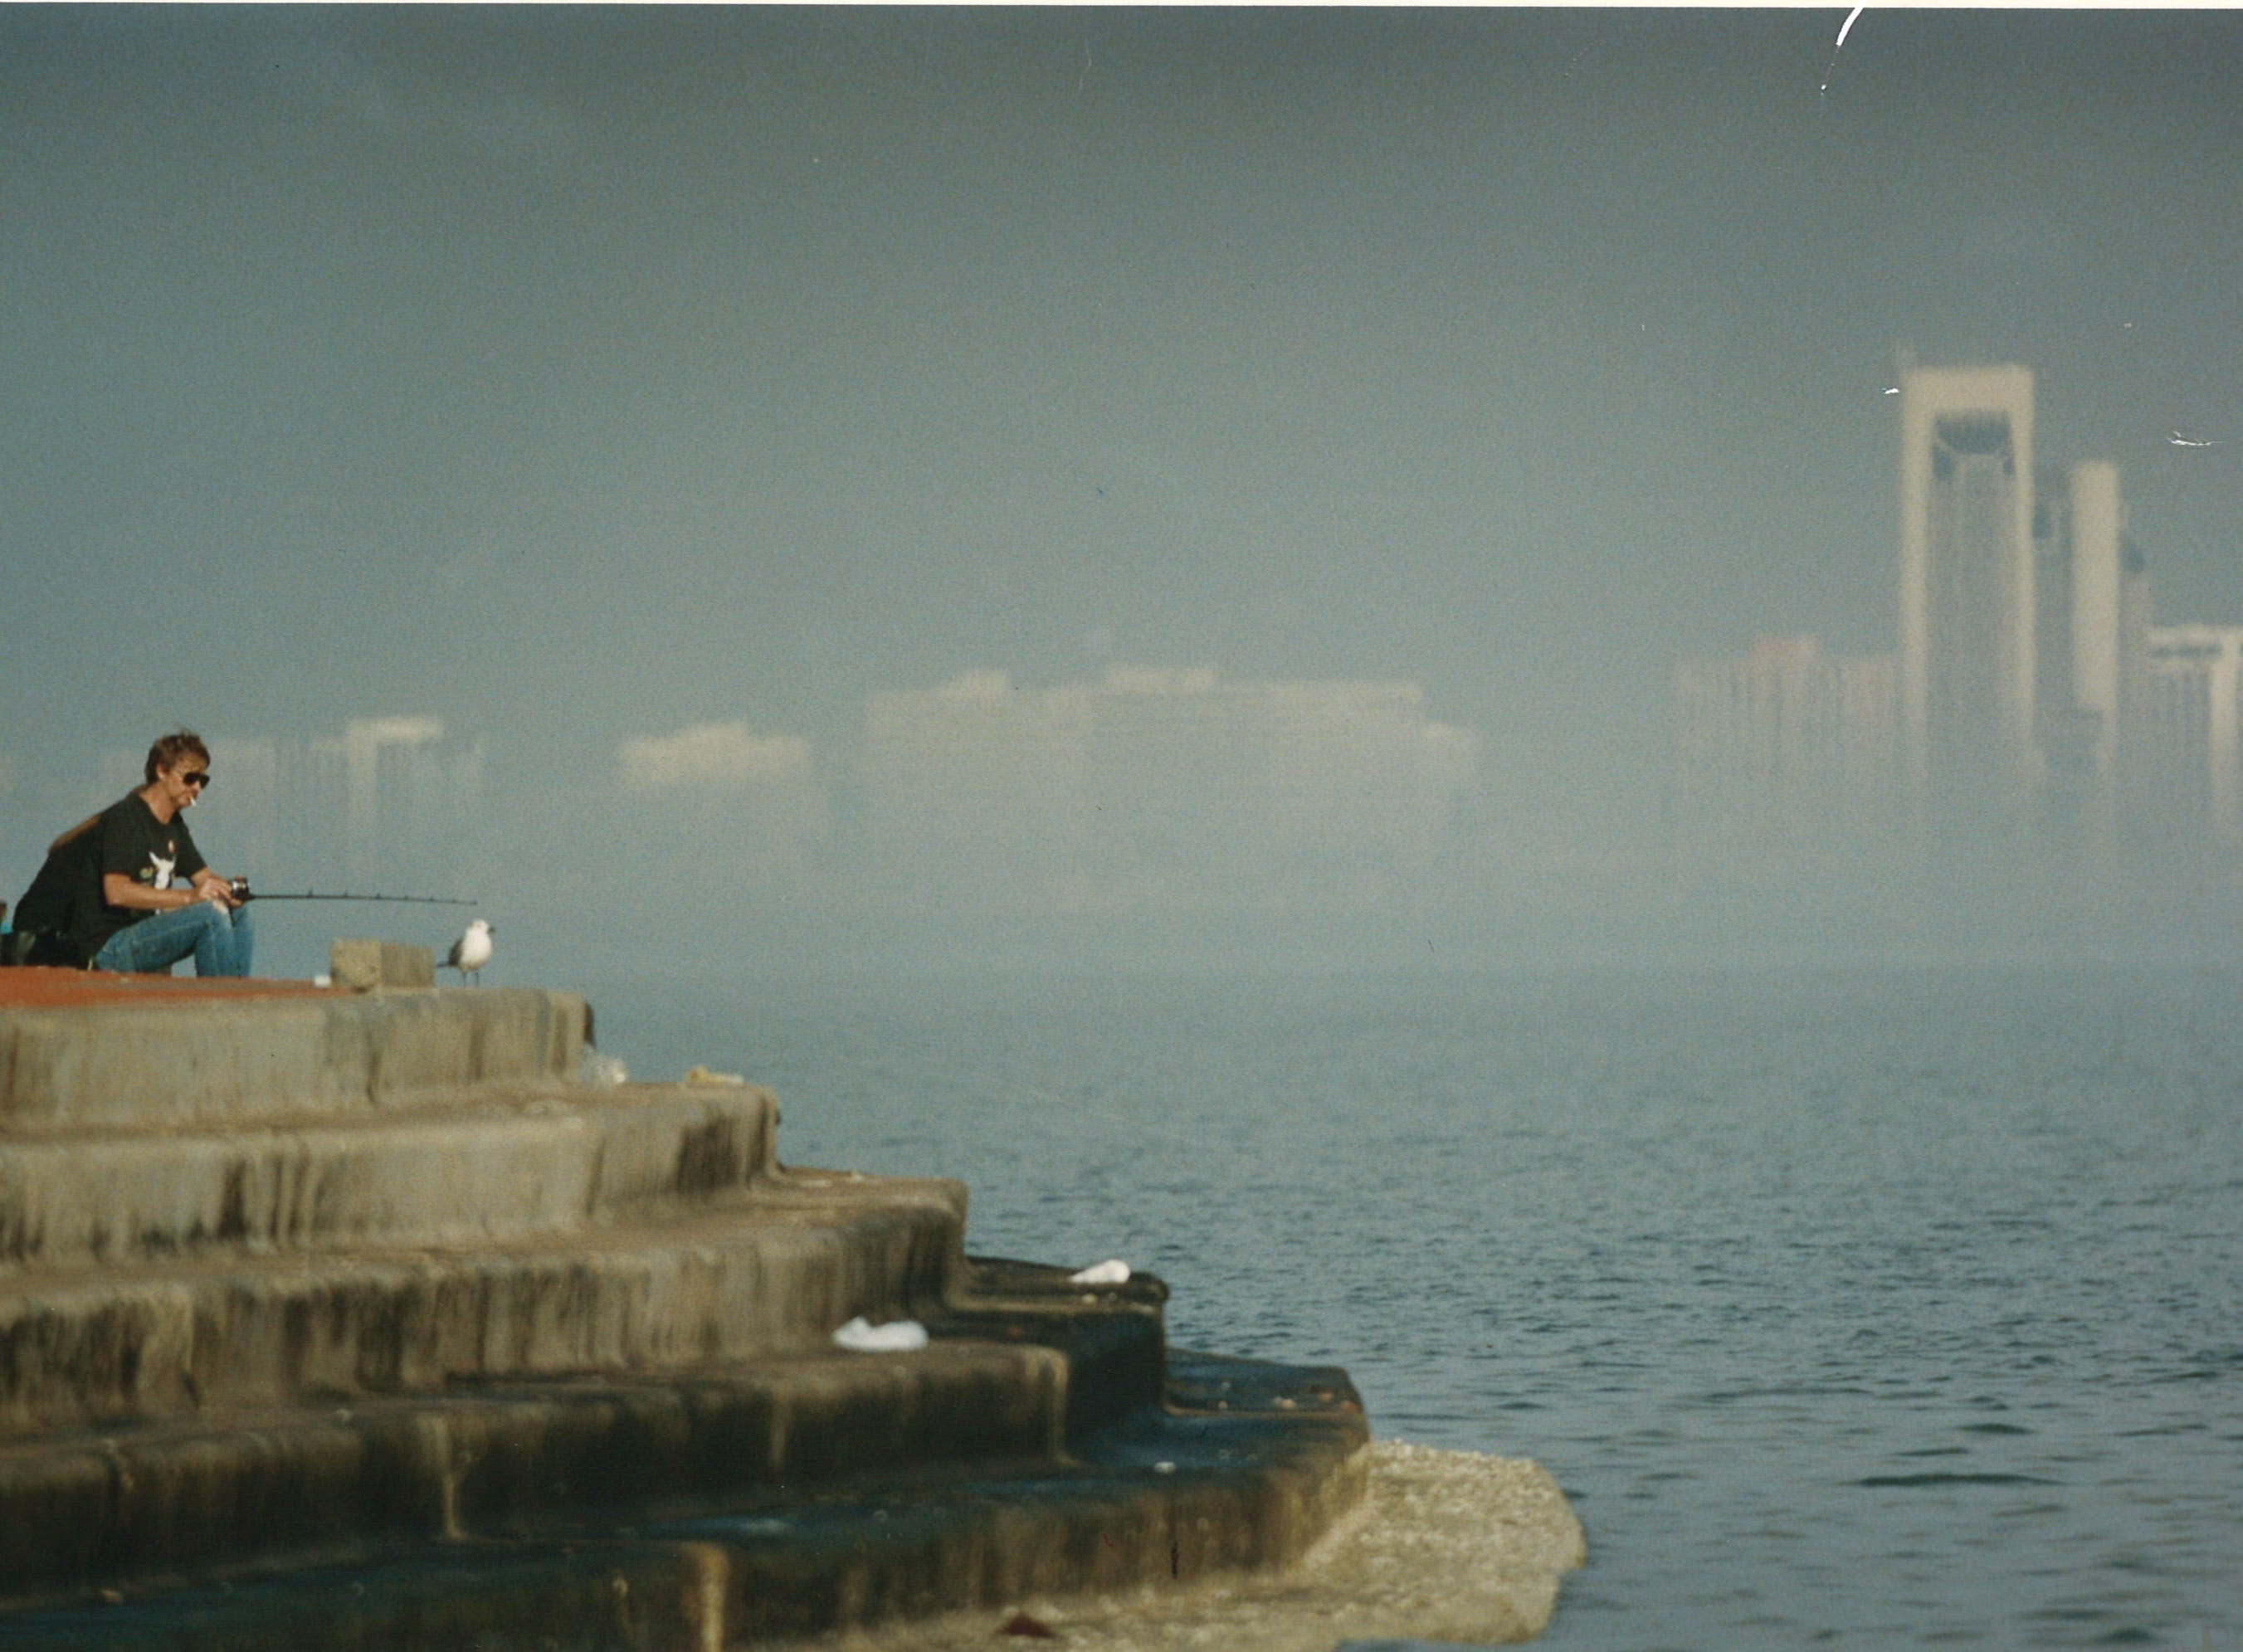 Don and Mary Richardson fish at Swantner Park in December 1993. In the background, downtown Corpus Christi is partially obscured by fog.